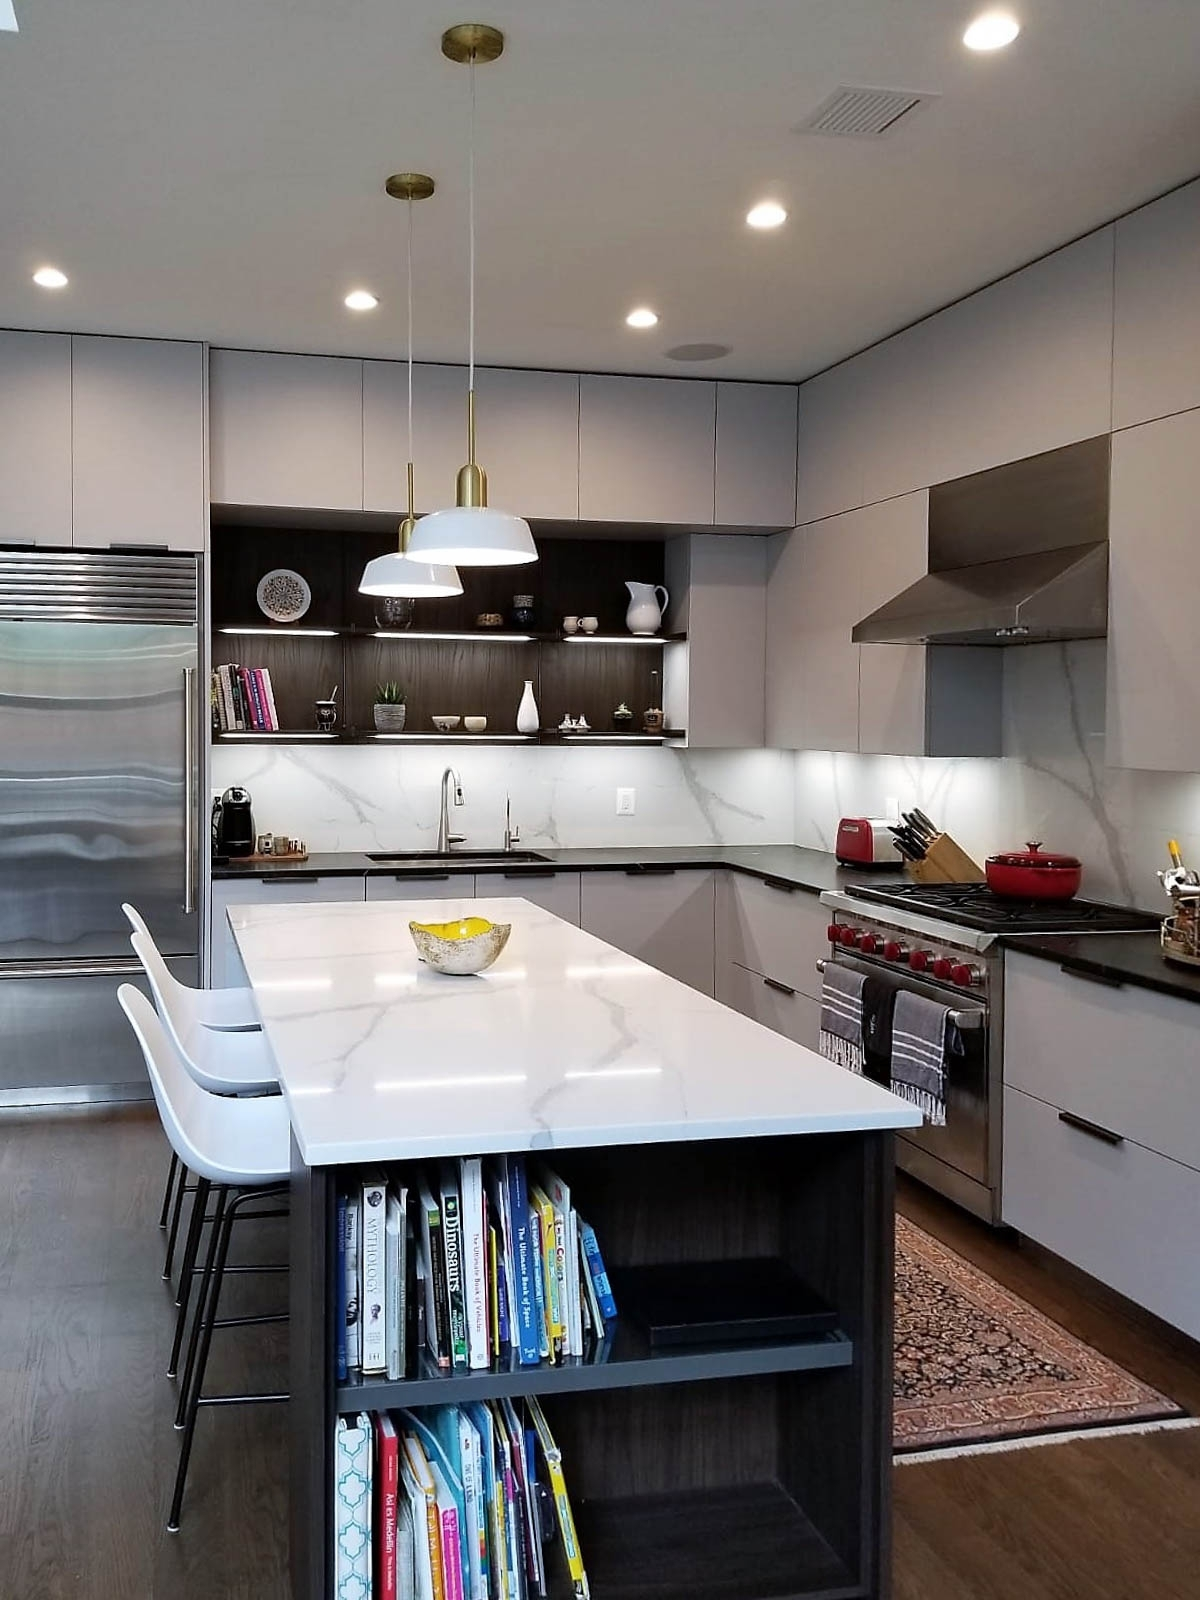 Planning A Modern Kitchen Remodel Avoid These 4 Mistakes